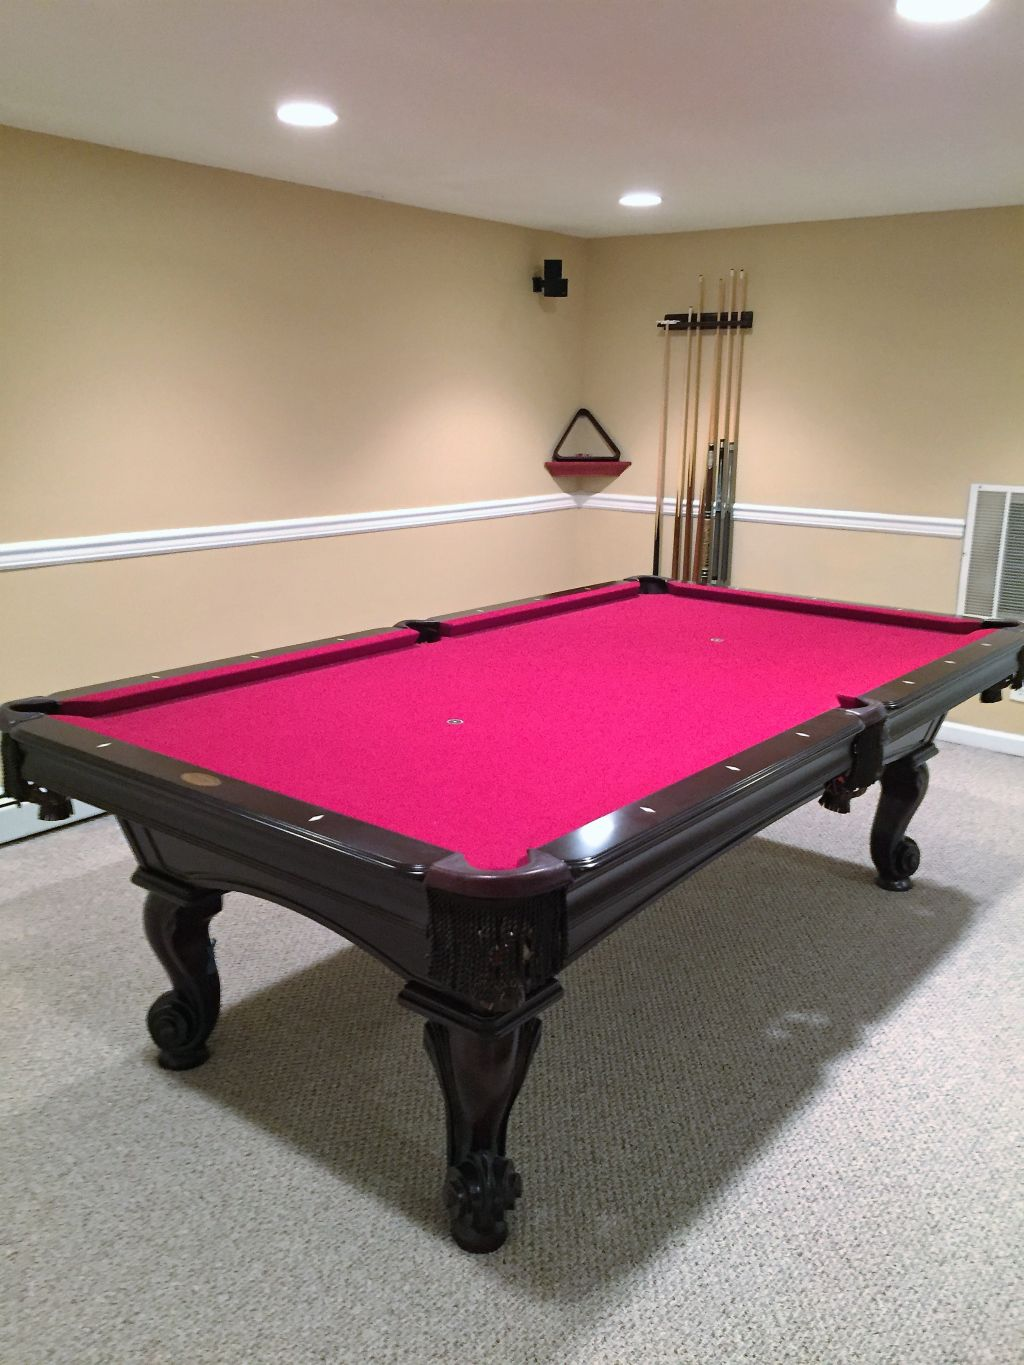 Olhausen 8' Pool Table like new